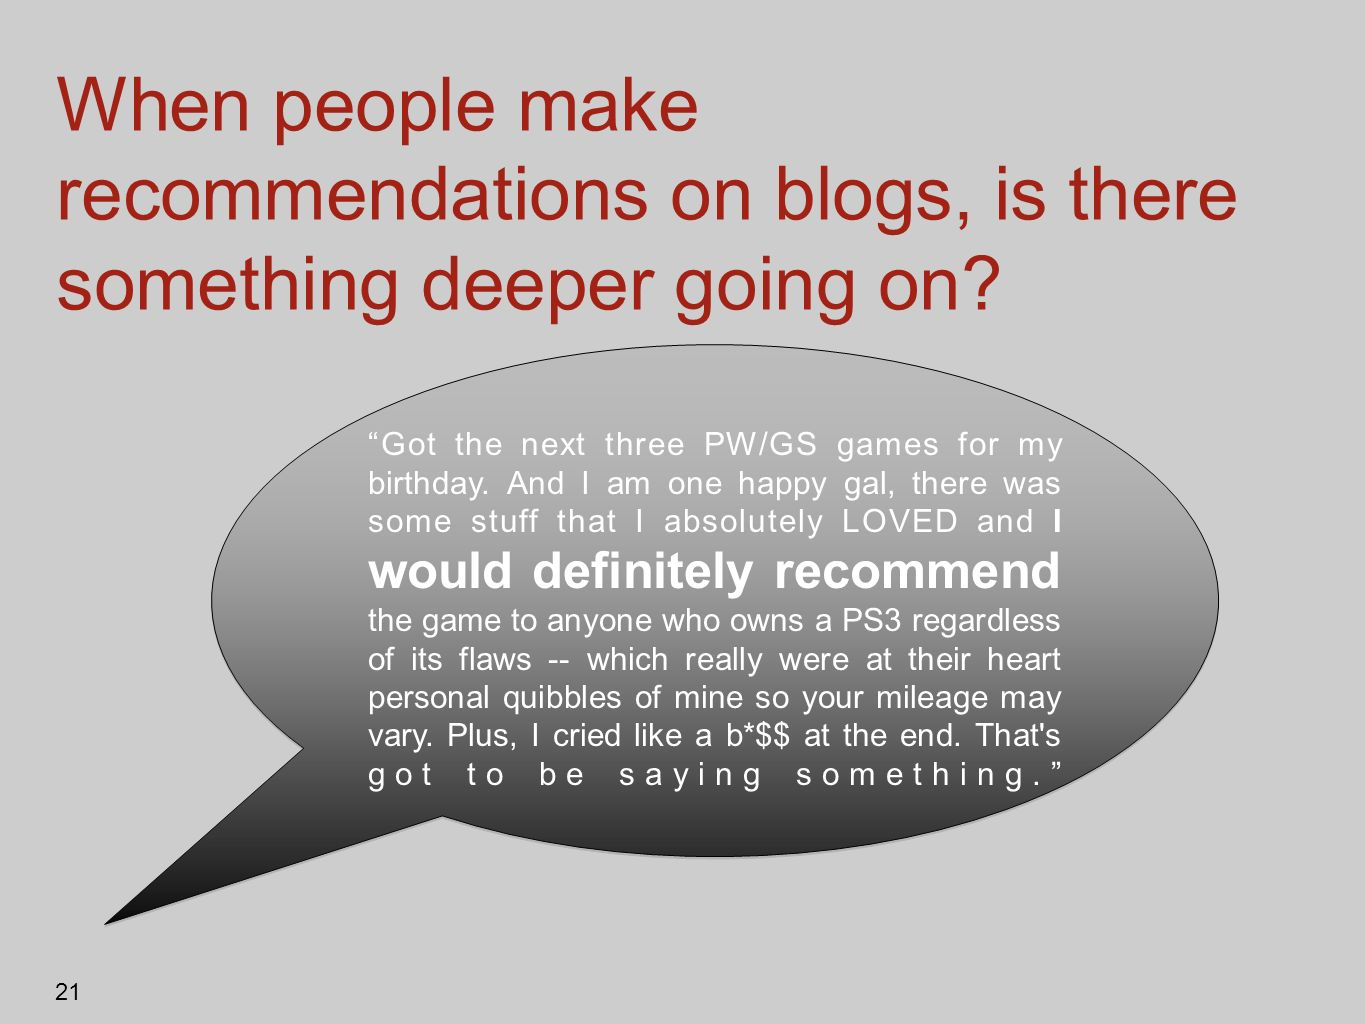 When people make recommendations on blogs, is there something deeper going on